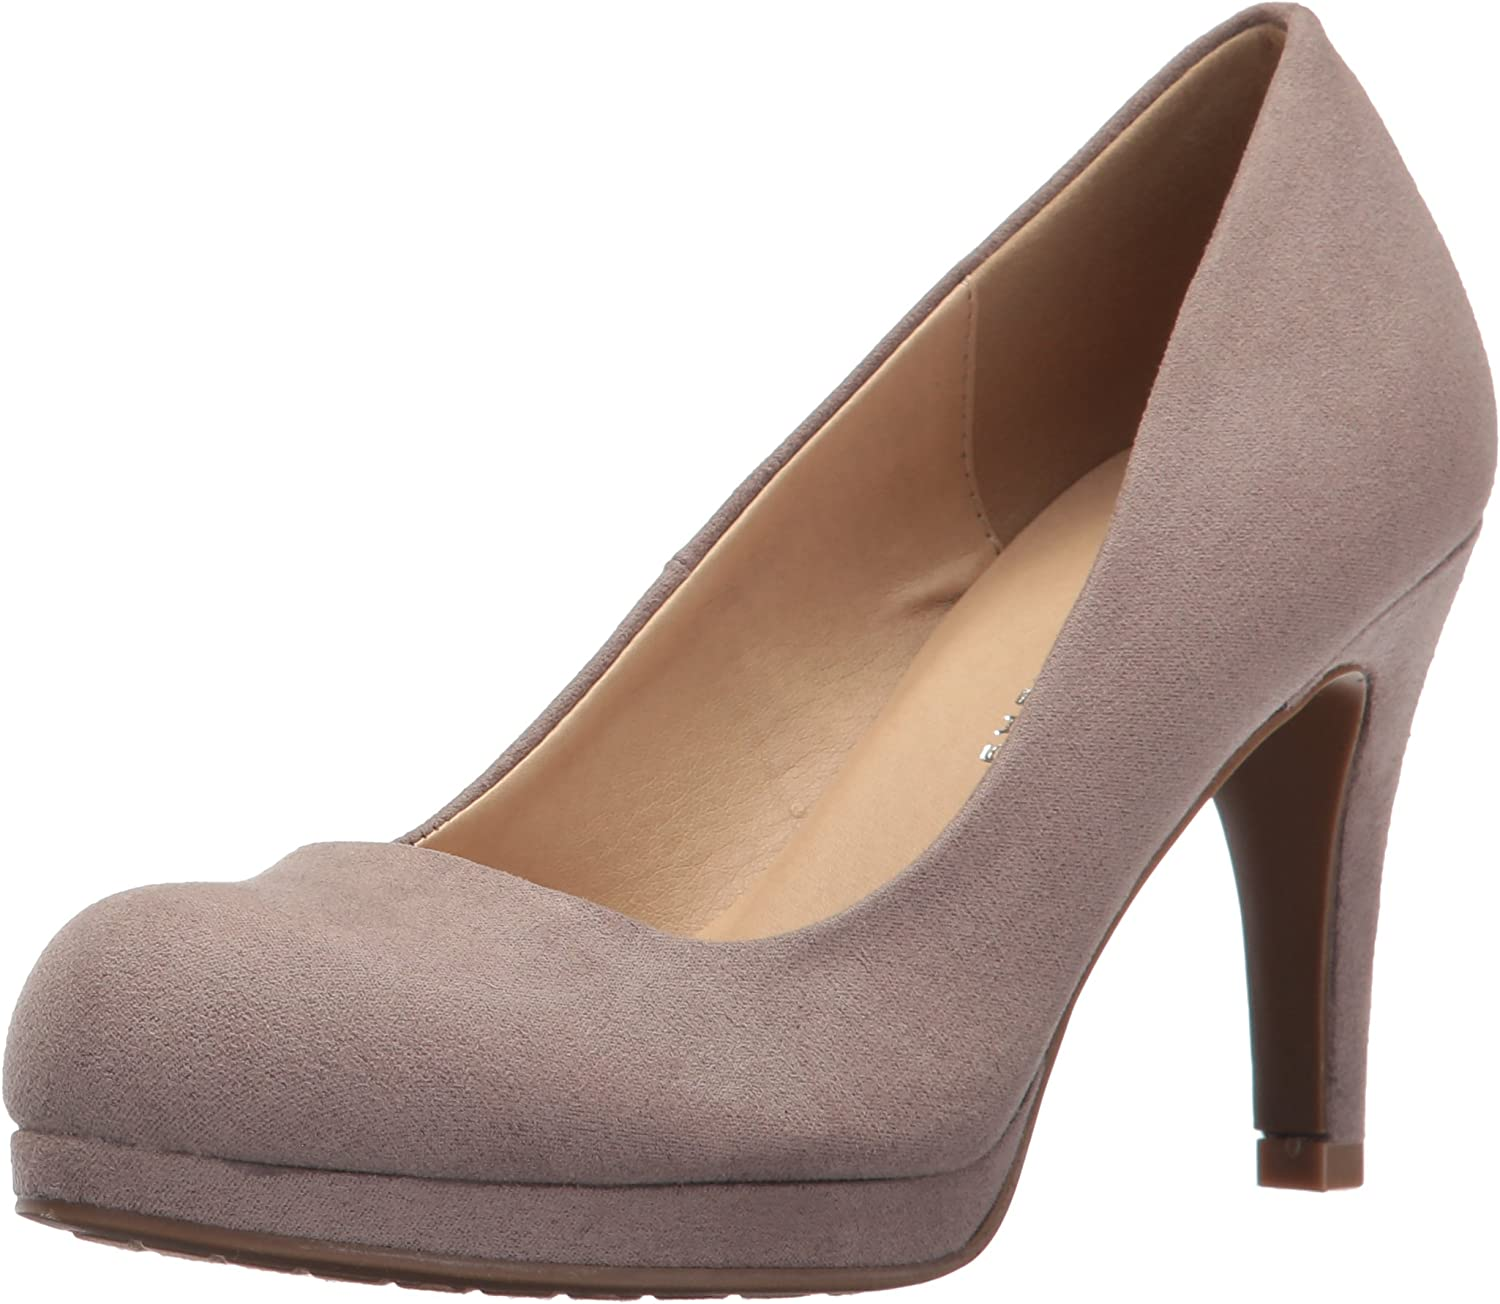 CL by Chinese Laundry Women's Nilah Platform Pump